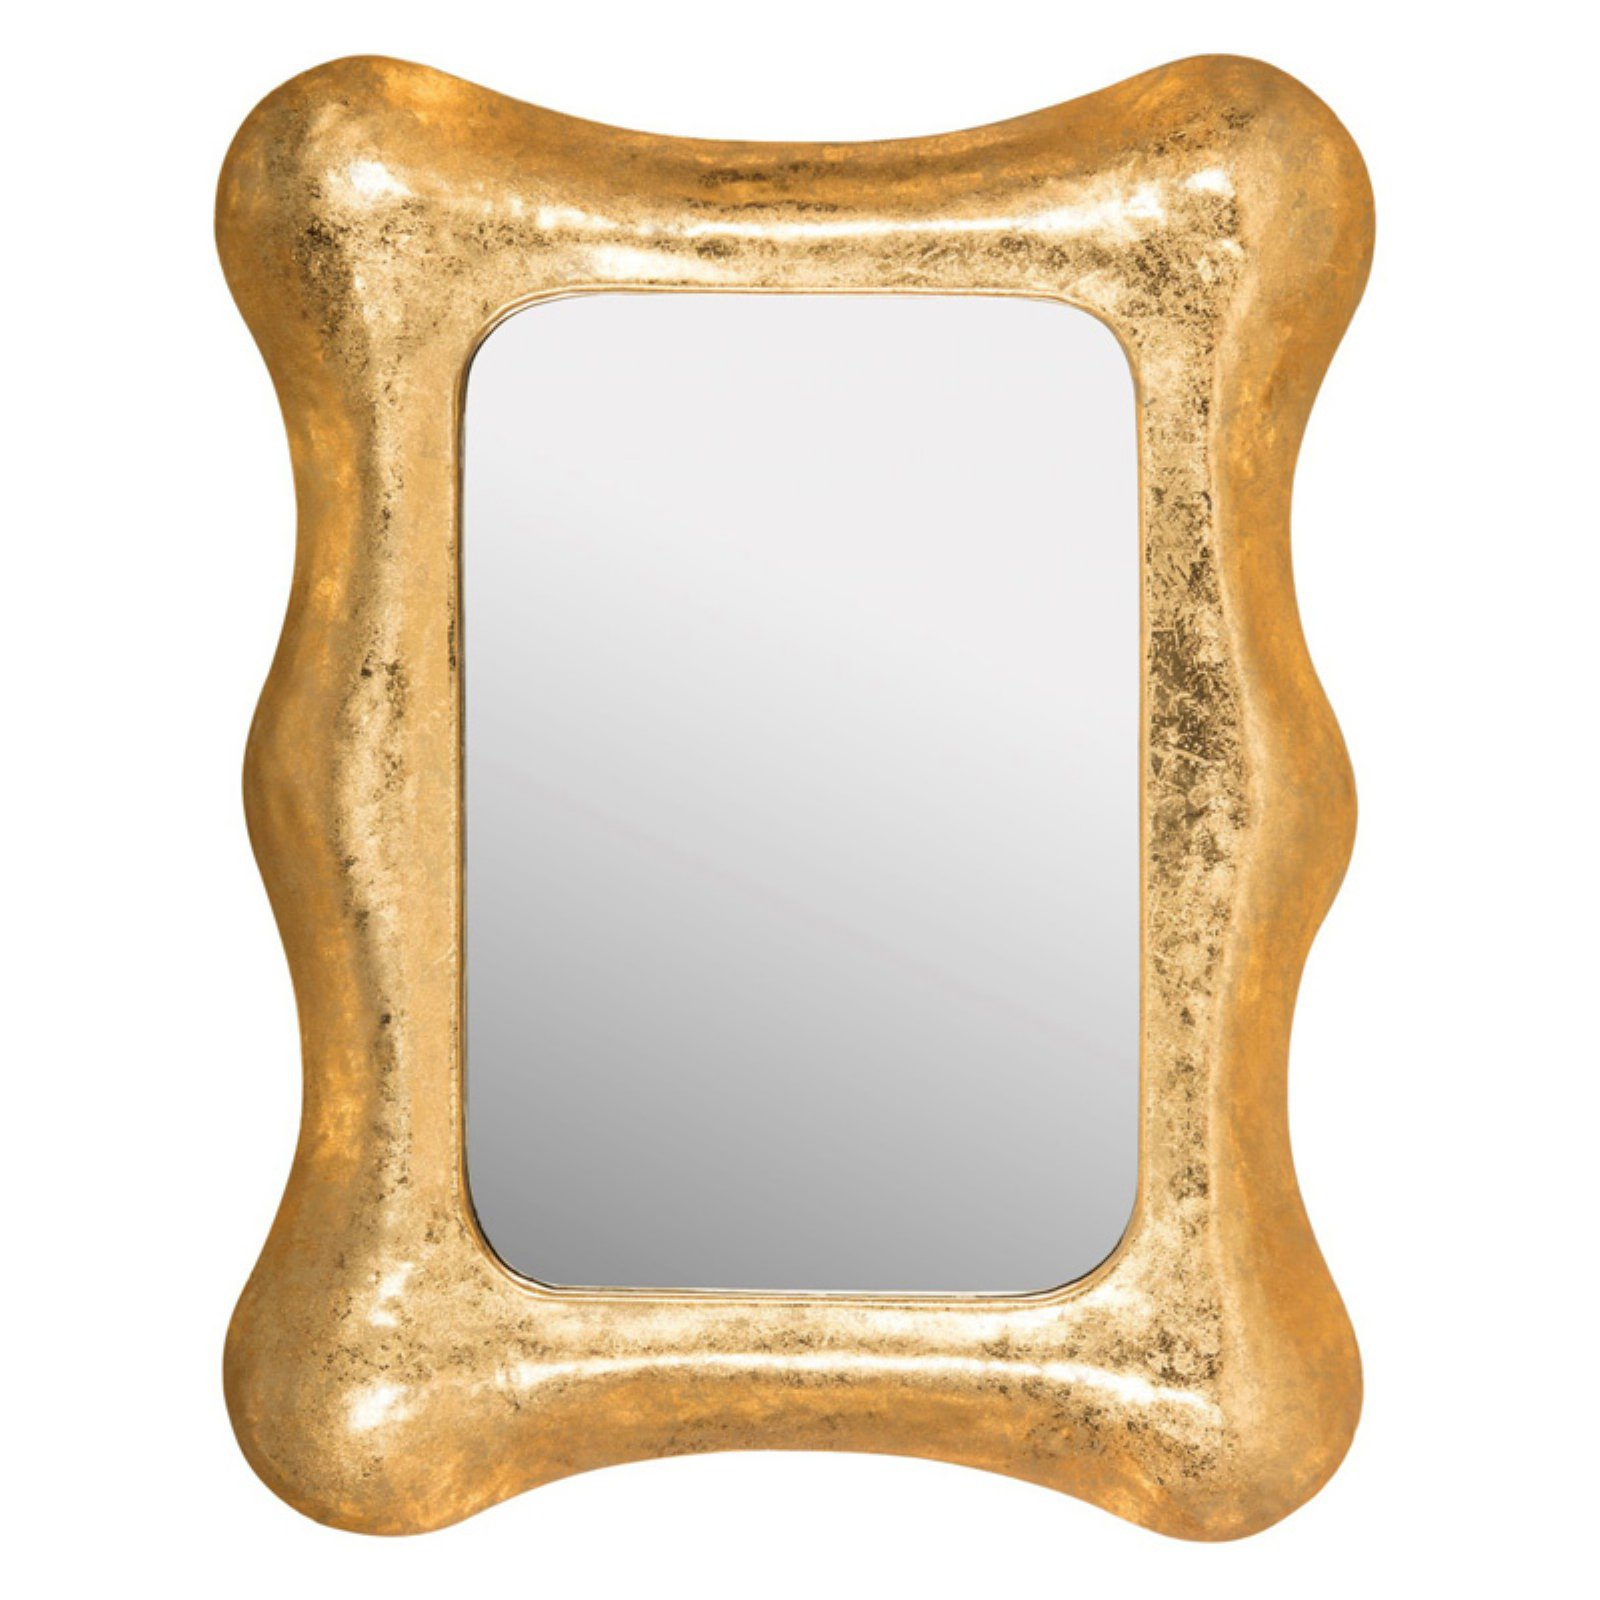 Safavieh Geri Square Iron Mirror, Gold/White